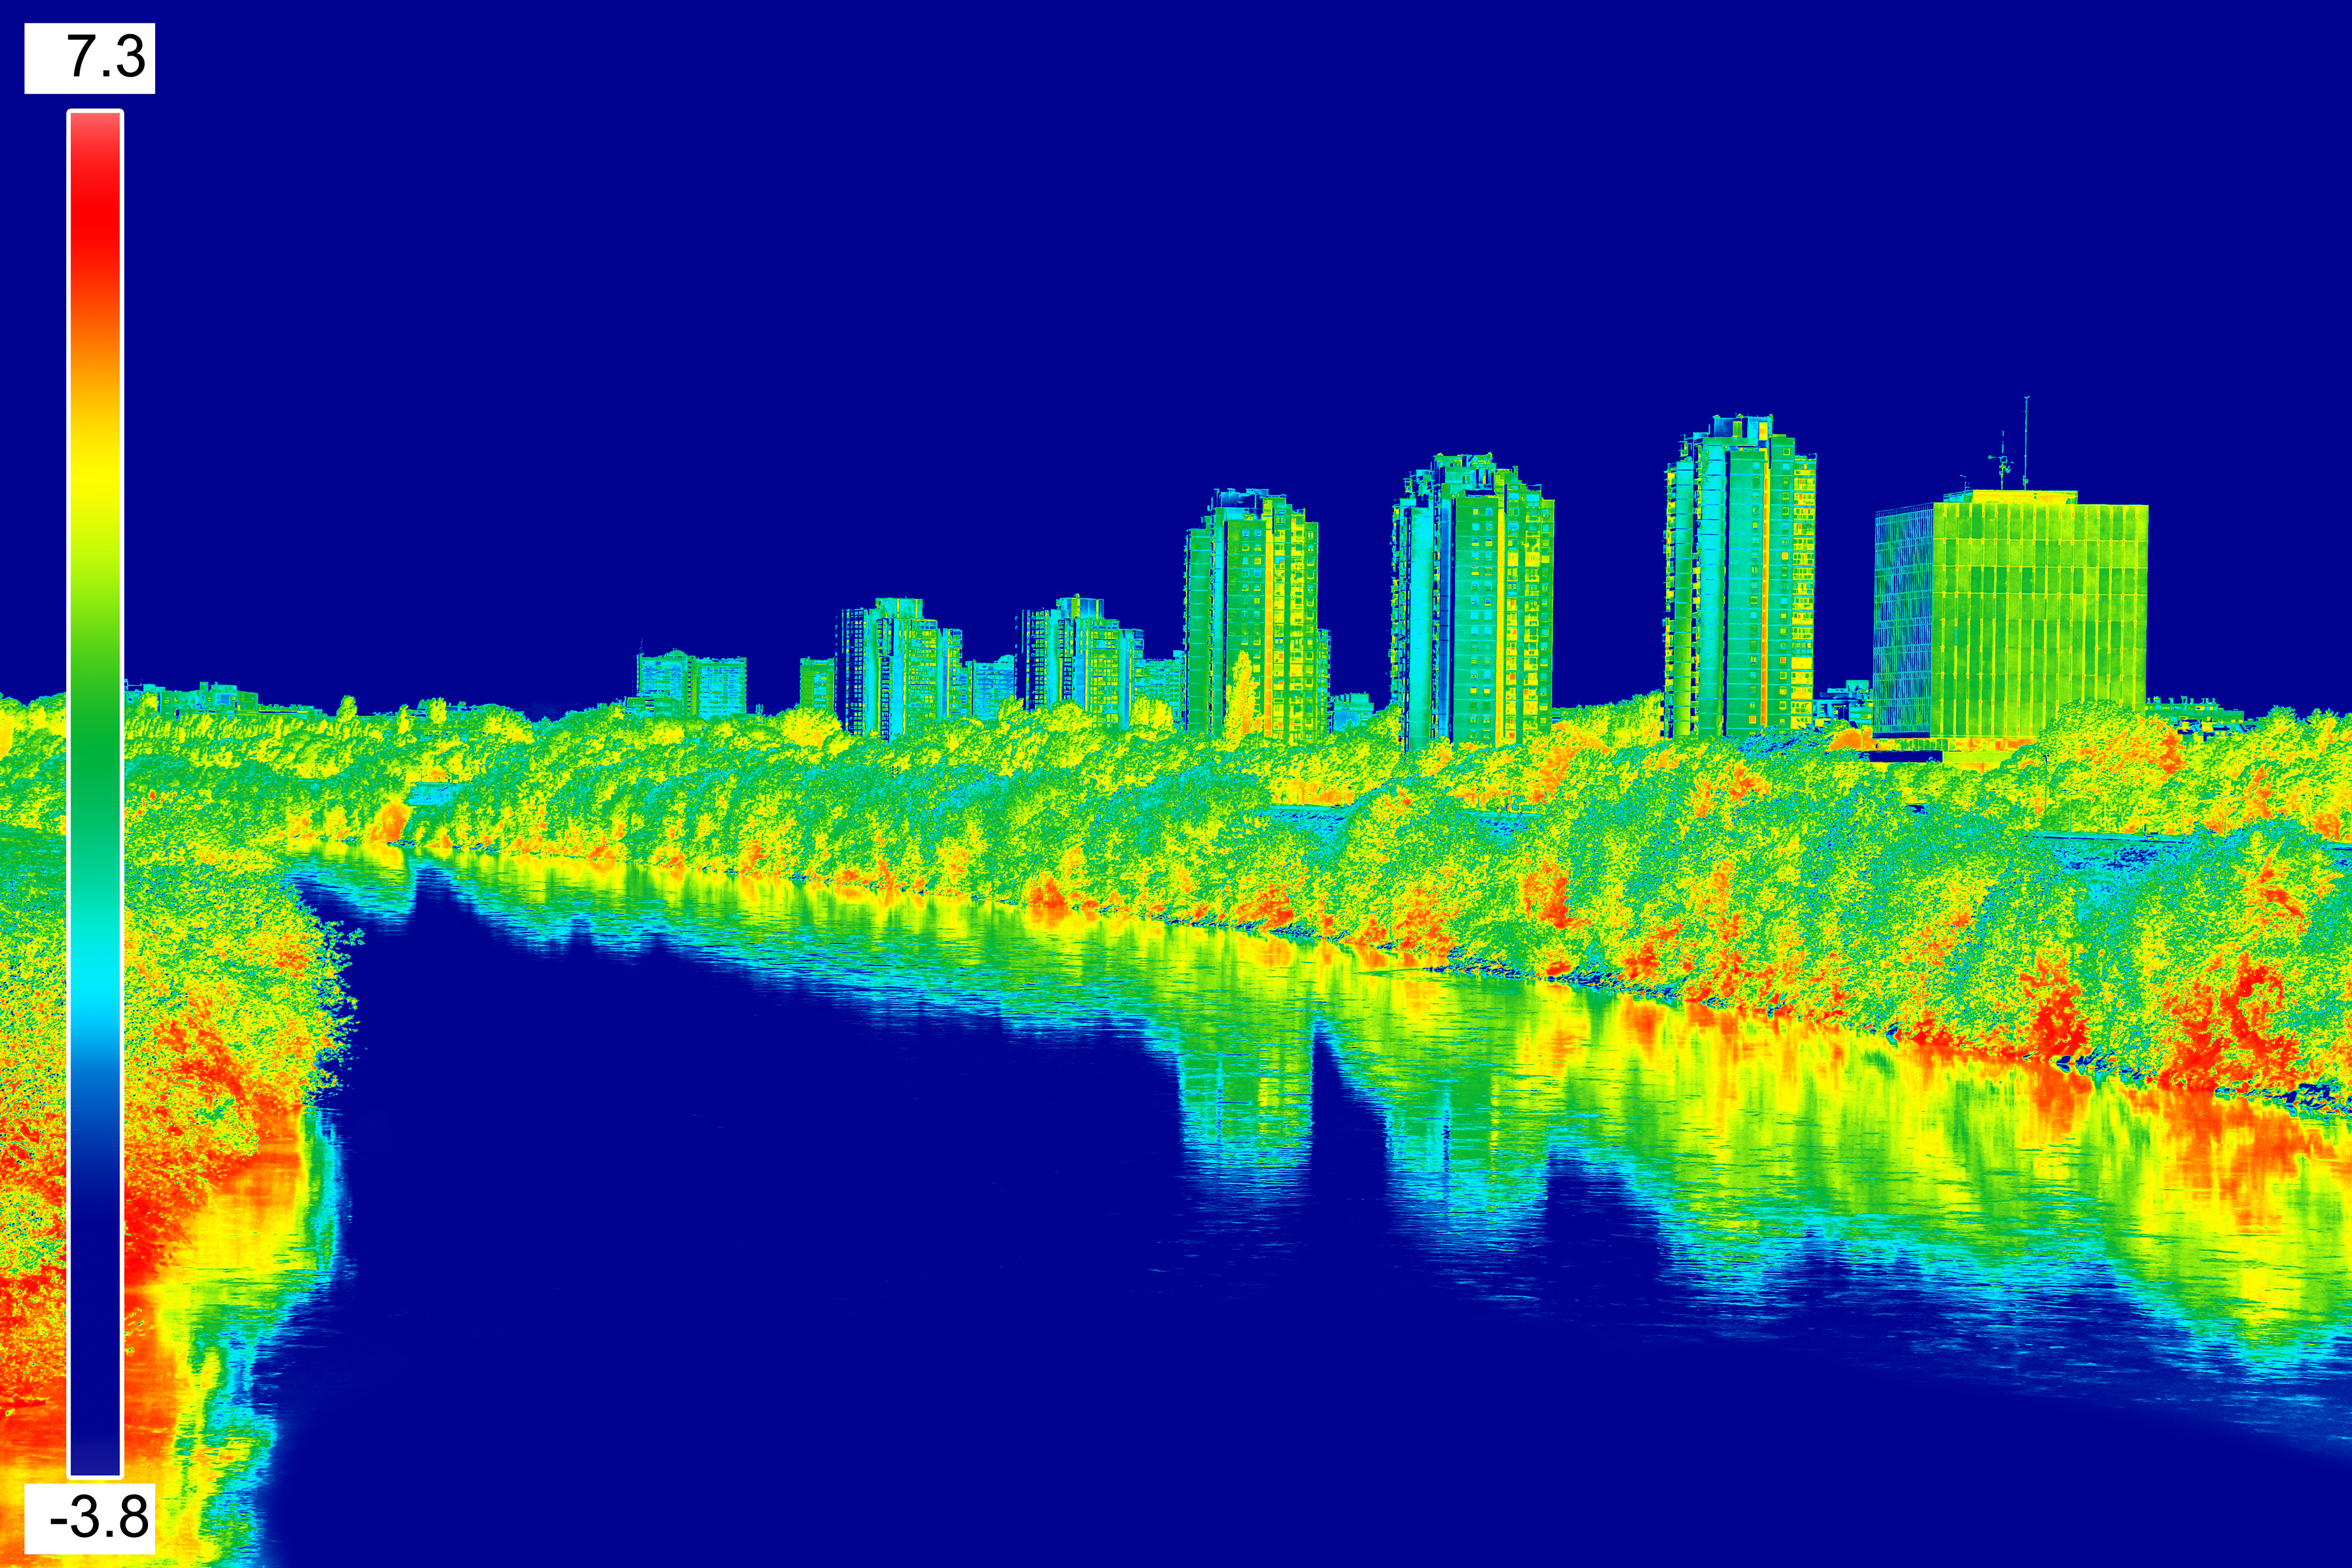 Heat Infrared Thermal Image Camera InspectionTechnology Building Engineering Engineer Archetype Architect Architecture